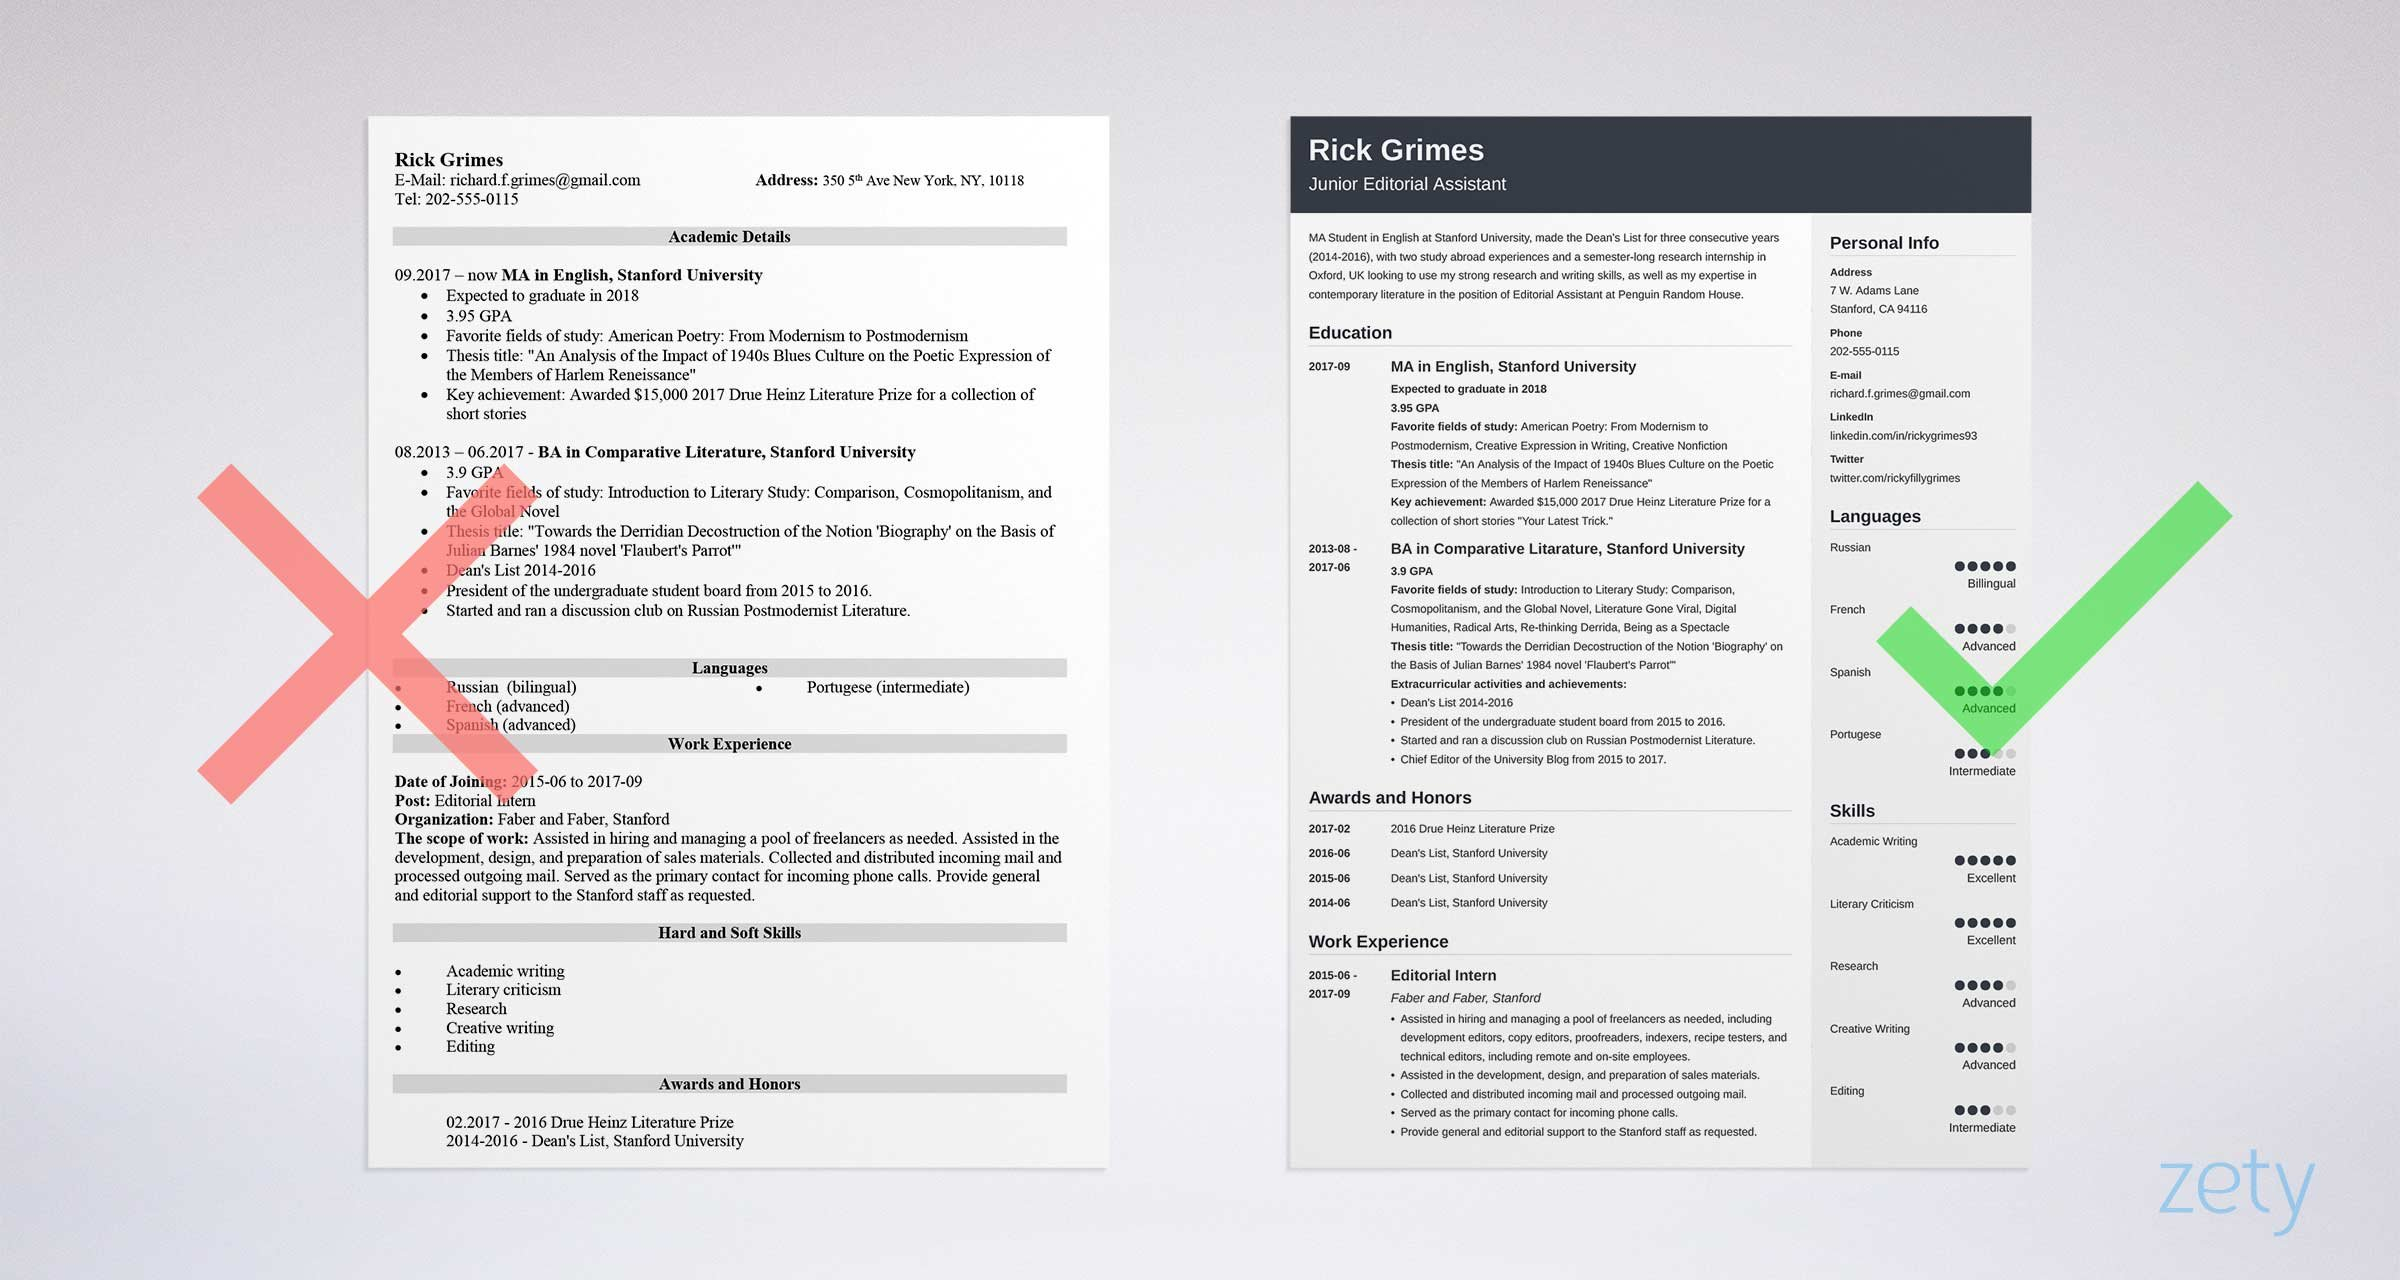 Business Analyst Resume Pdf - Entry Level Resume Sample and Plete Guide [ 20 Examples]